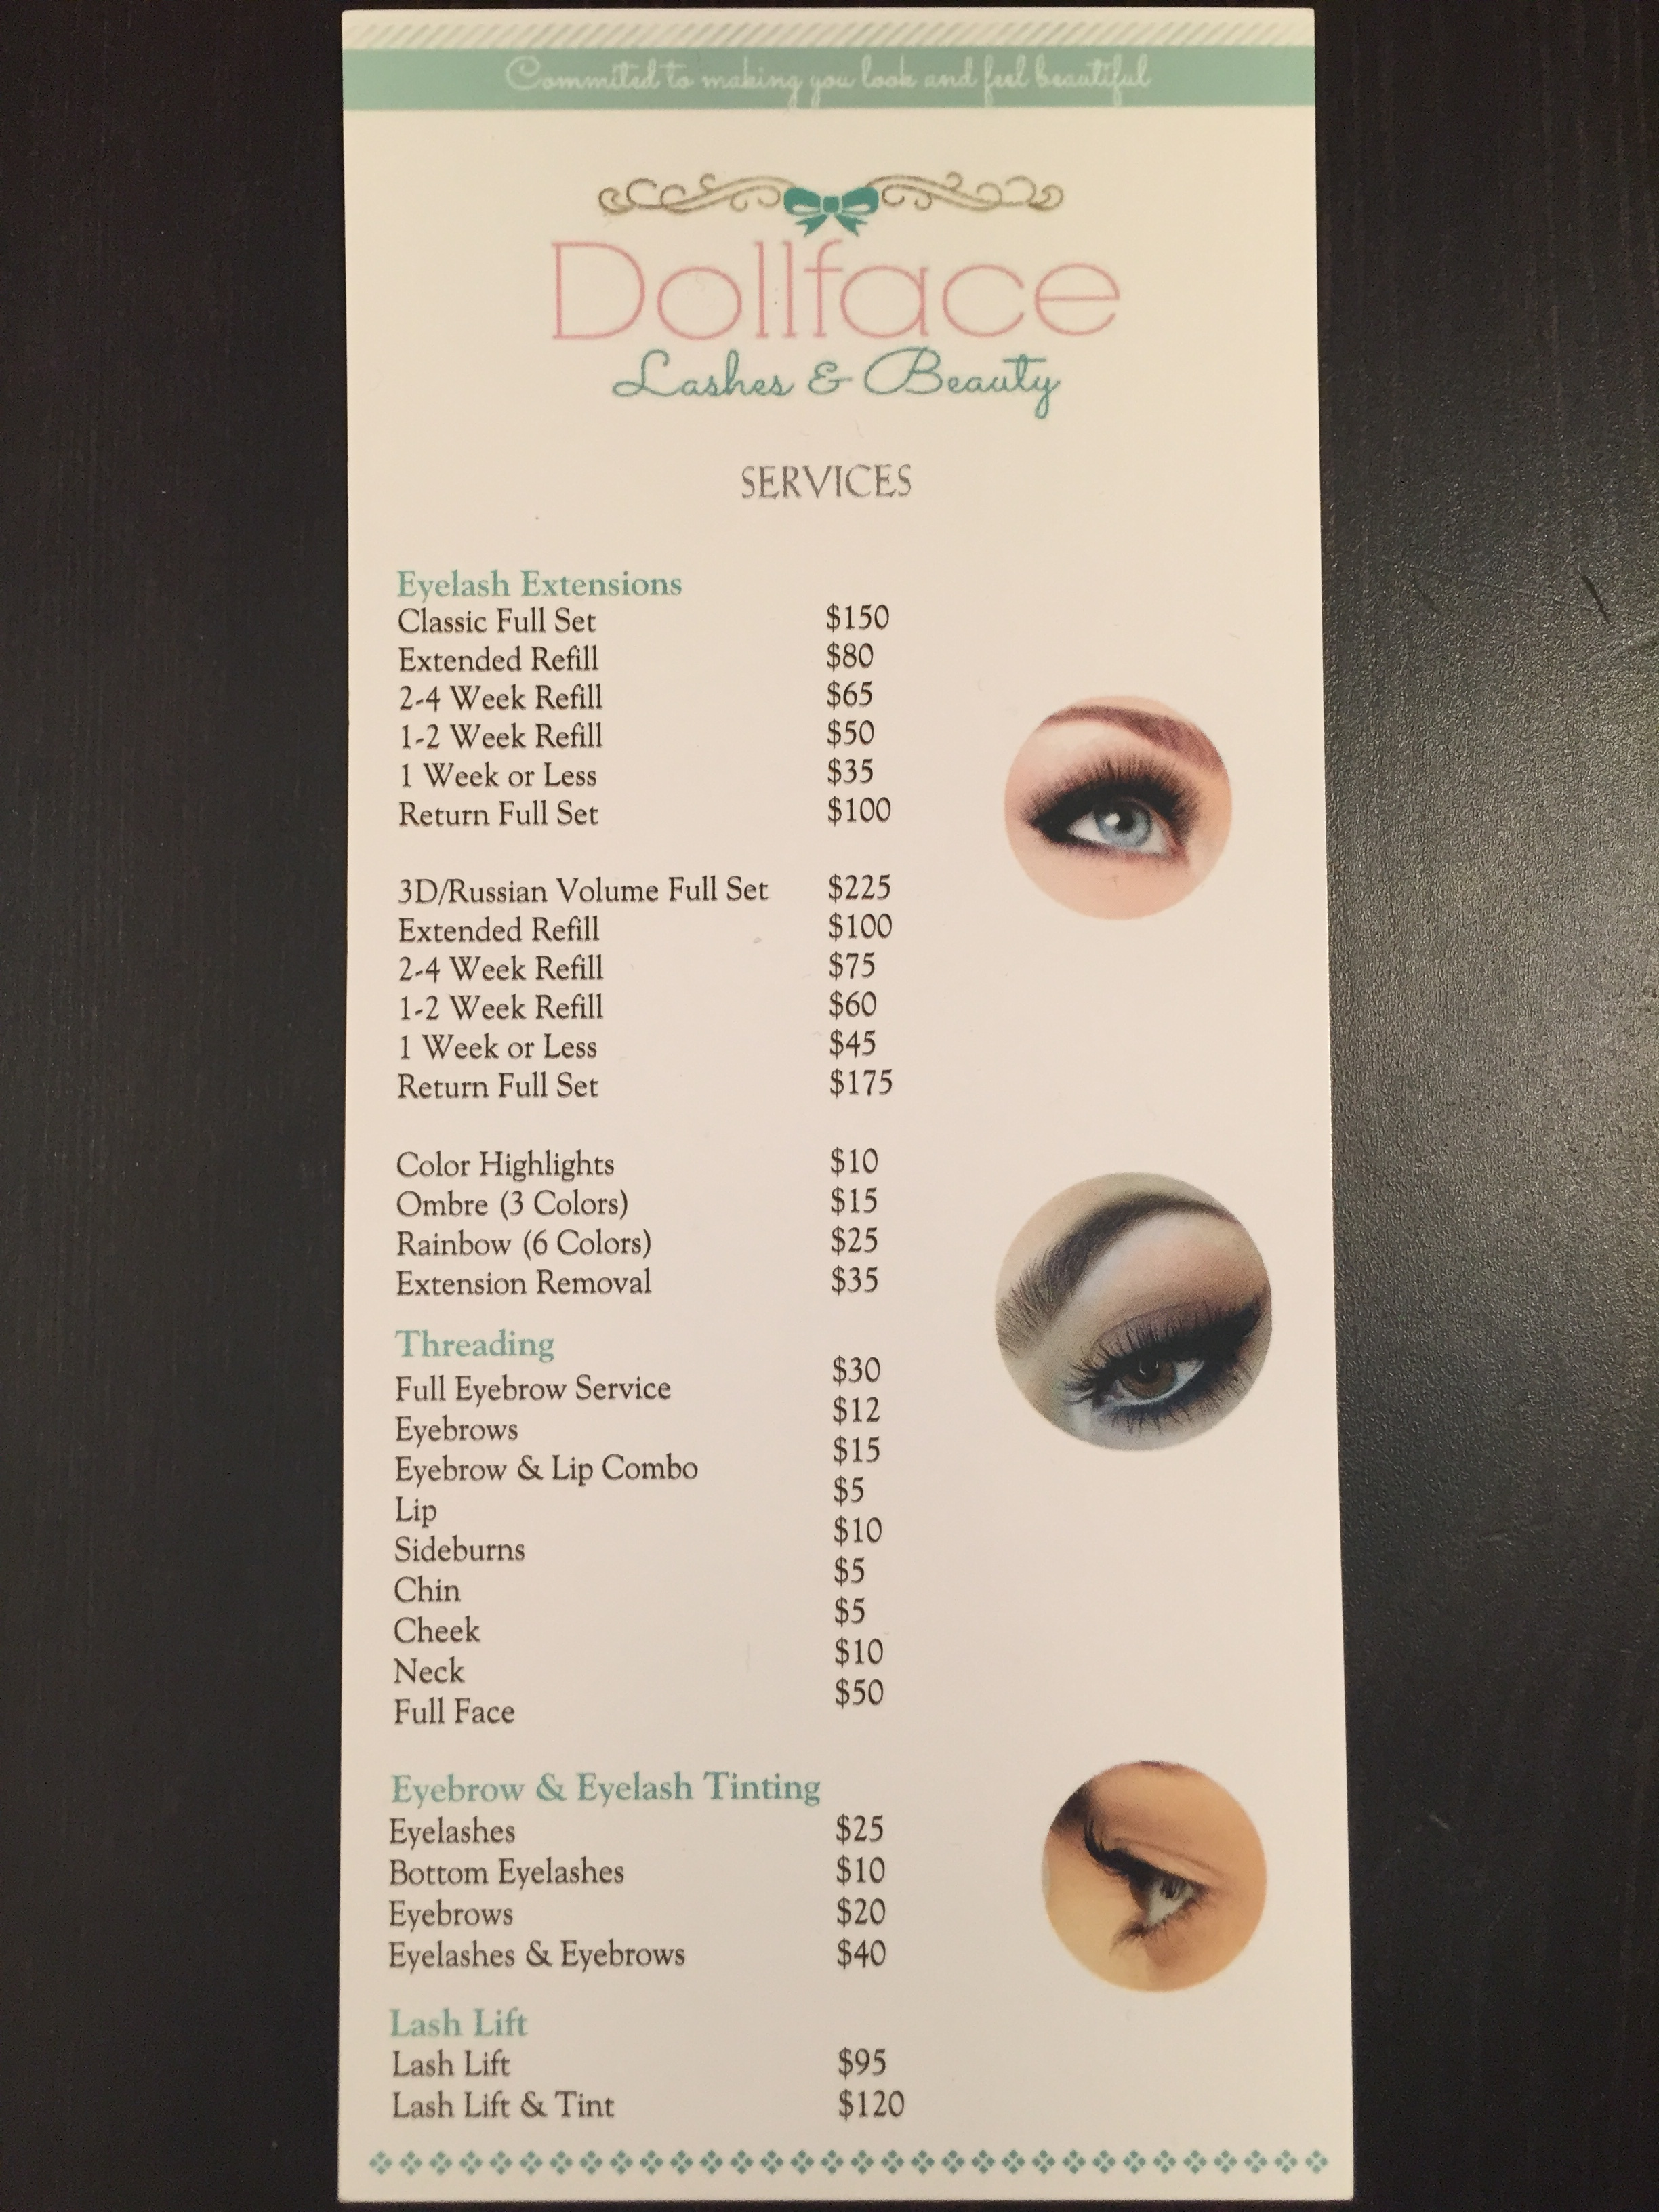 Dollface services pricing list!